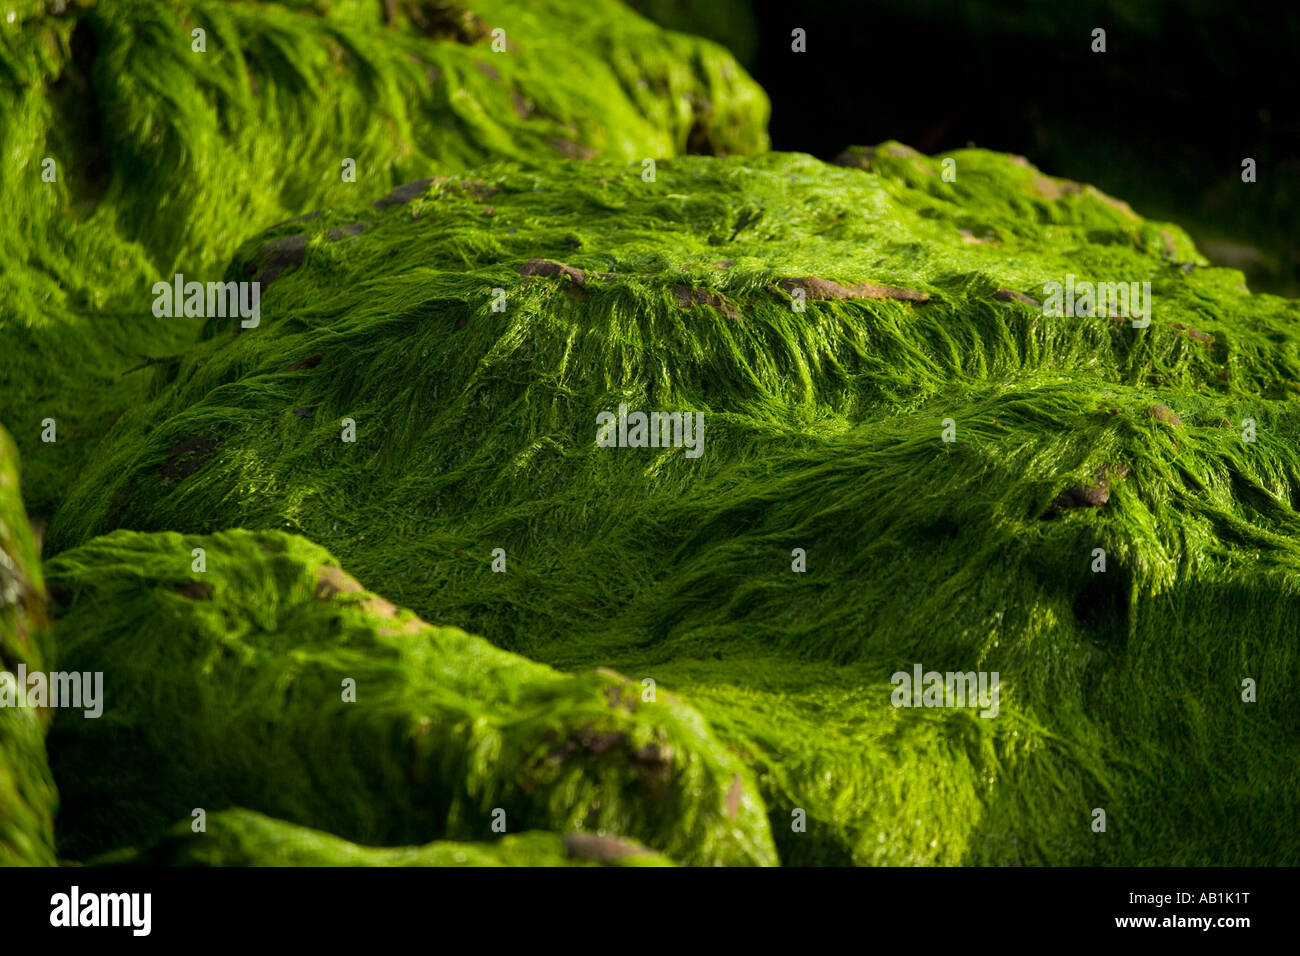 algae stockfotos algae bilder alamy. Black Bedroom Furniture Sets. Home Design Ideas